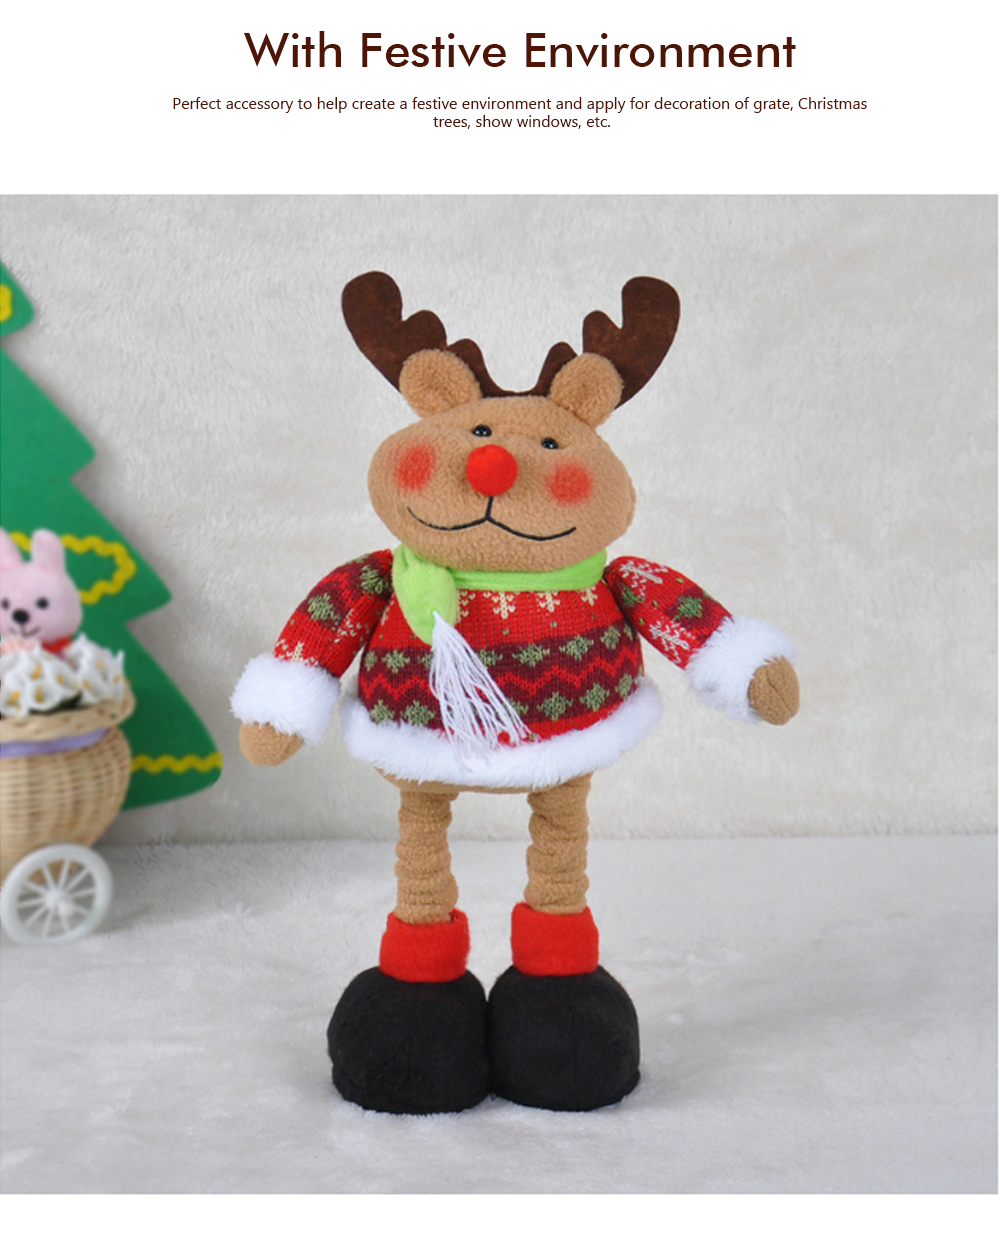 Standing Telescopic Santa Snowman, Figurine Santa Claus Posing Christmas Doll for Gifts 3